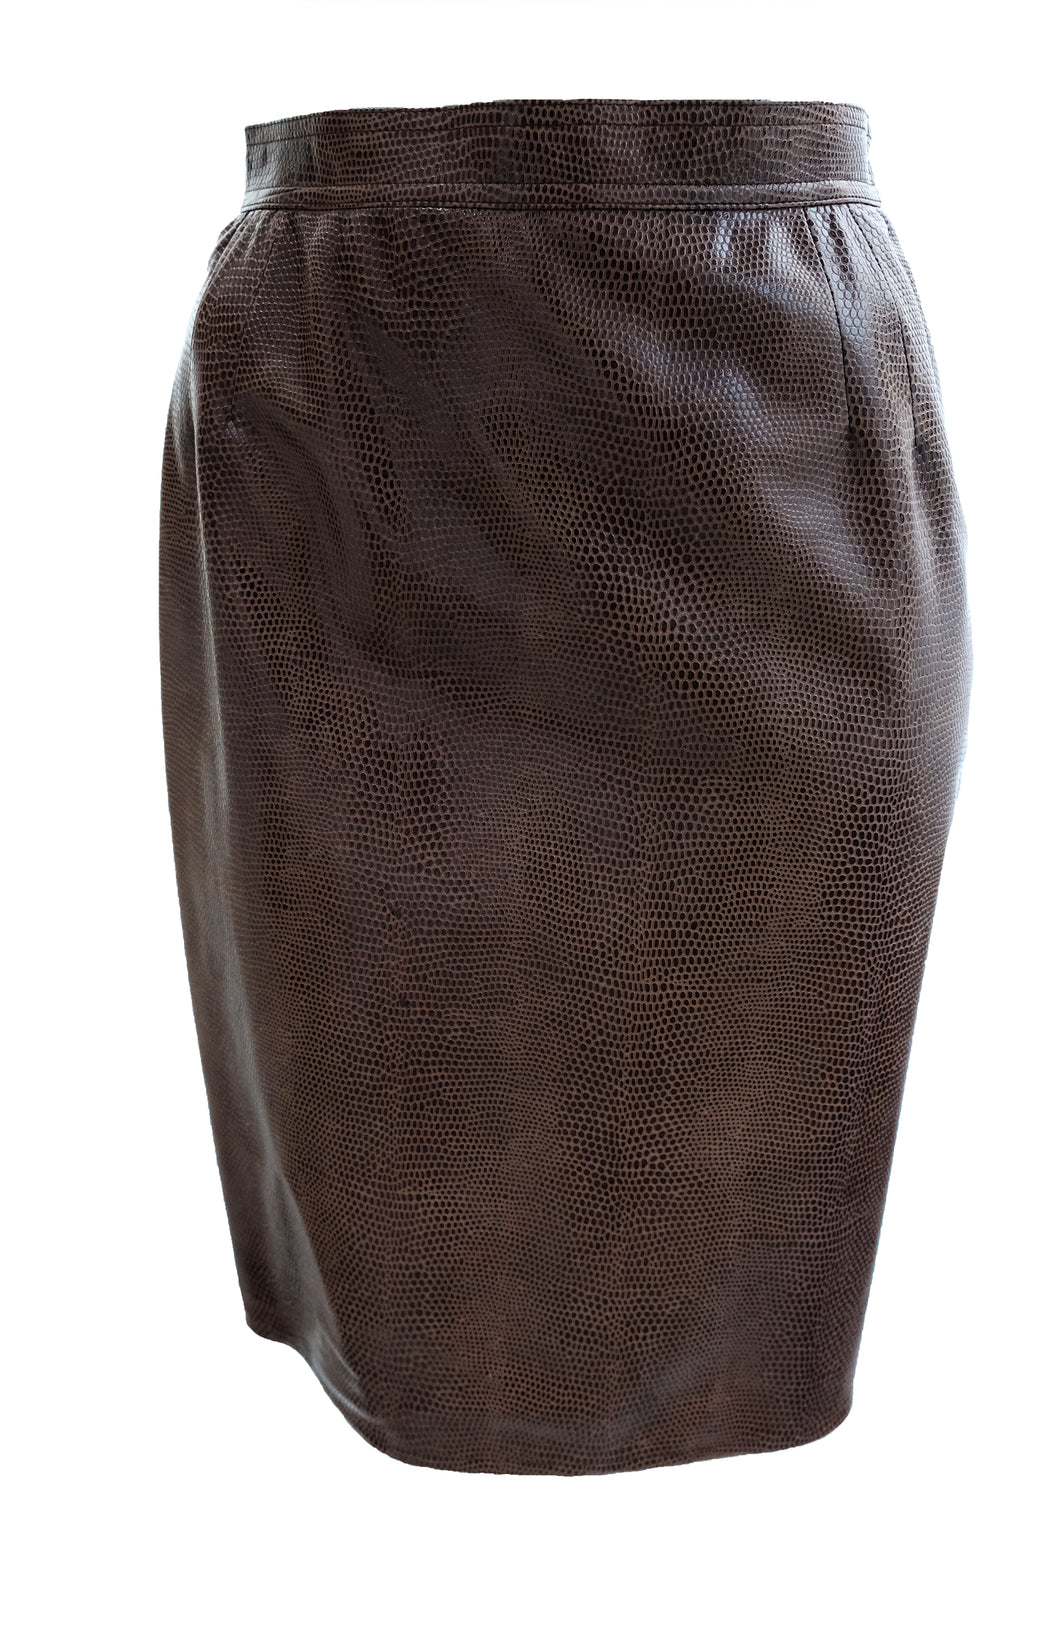 Ungaro Vintage Snakeskin Leather Pencil Skirt, UK10